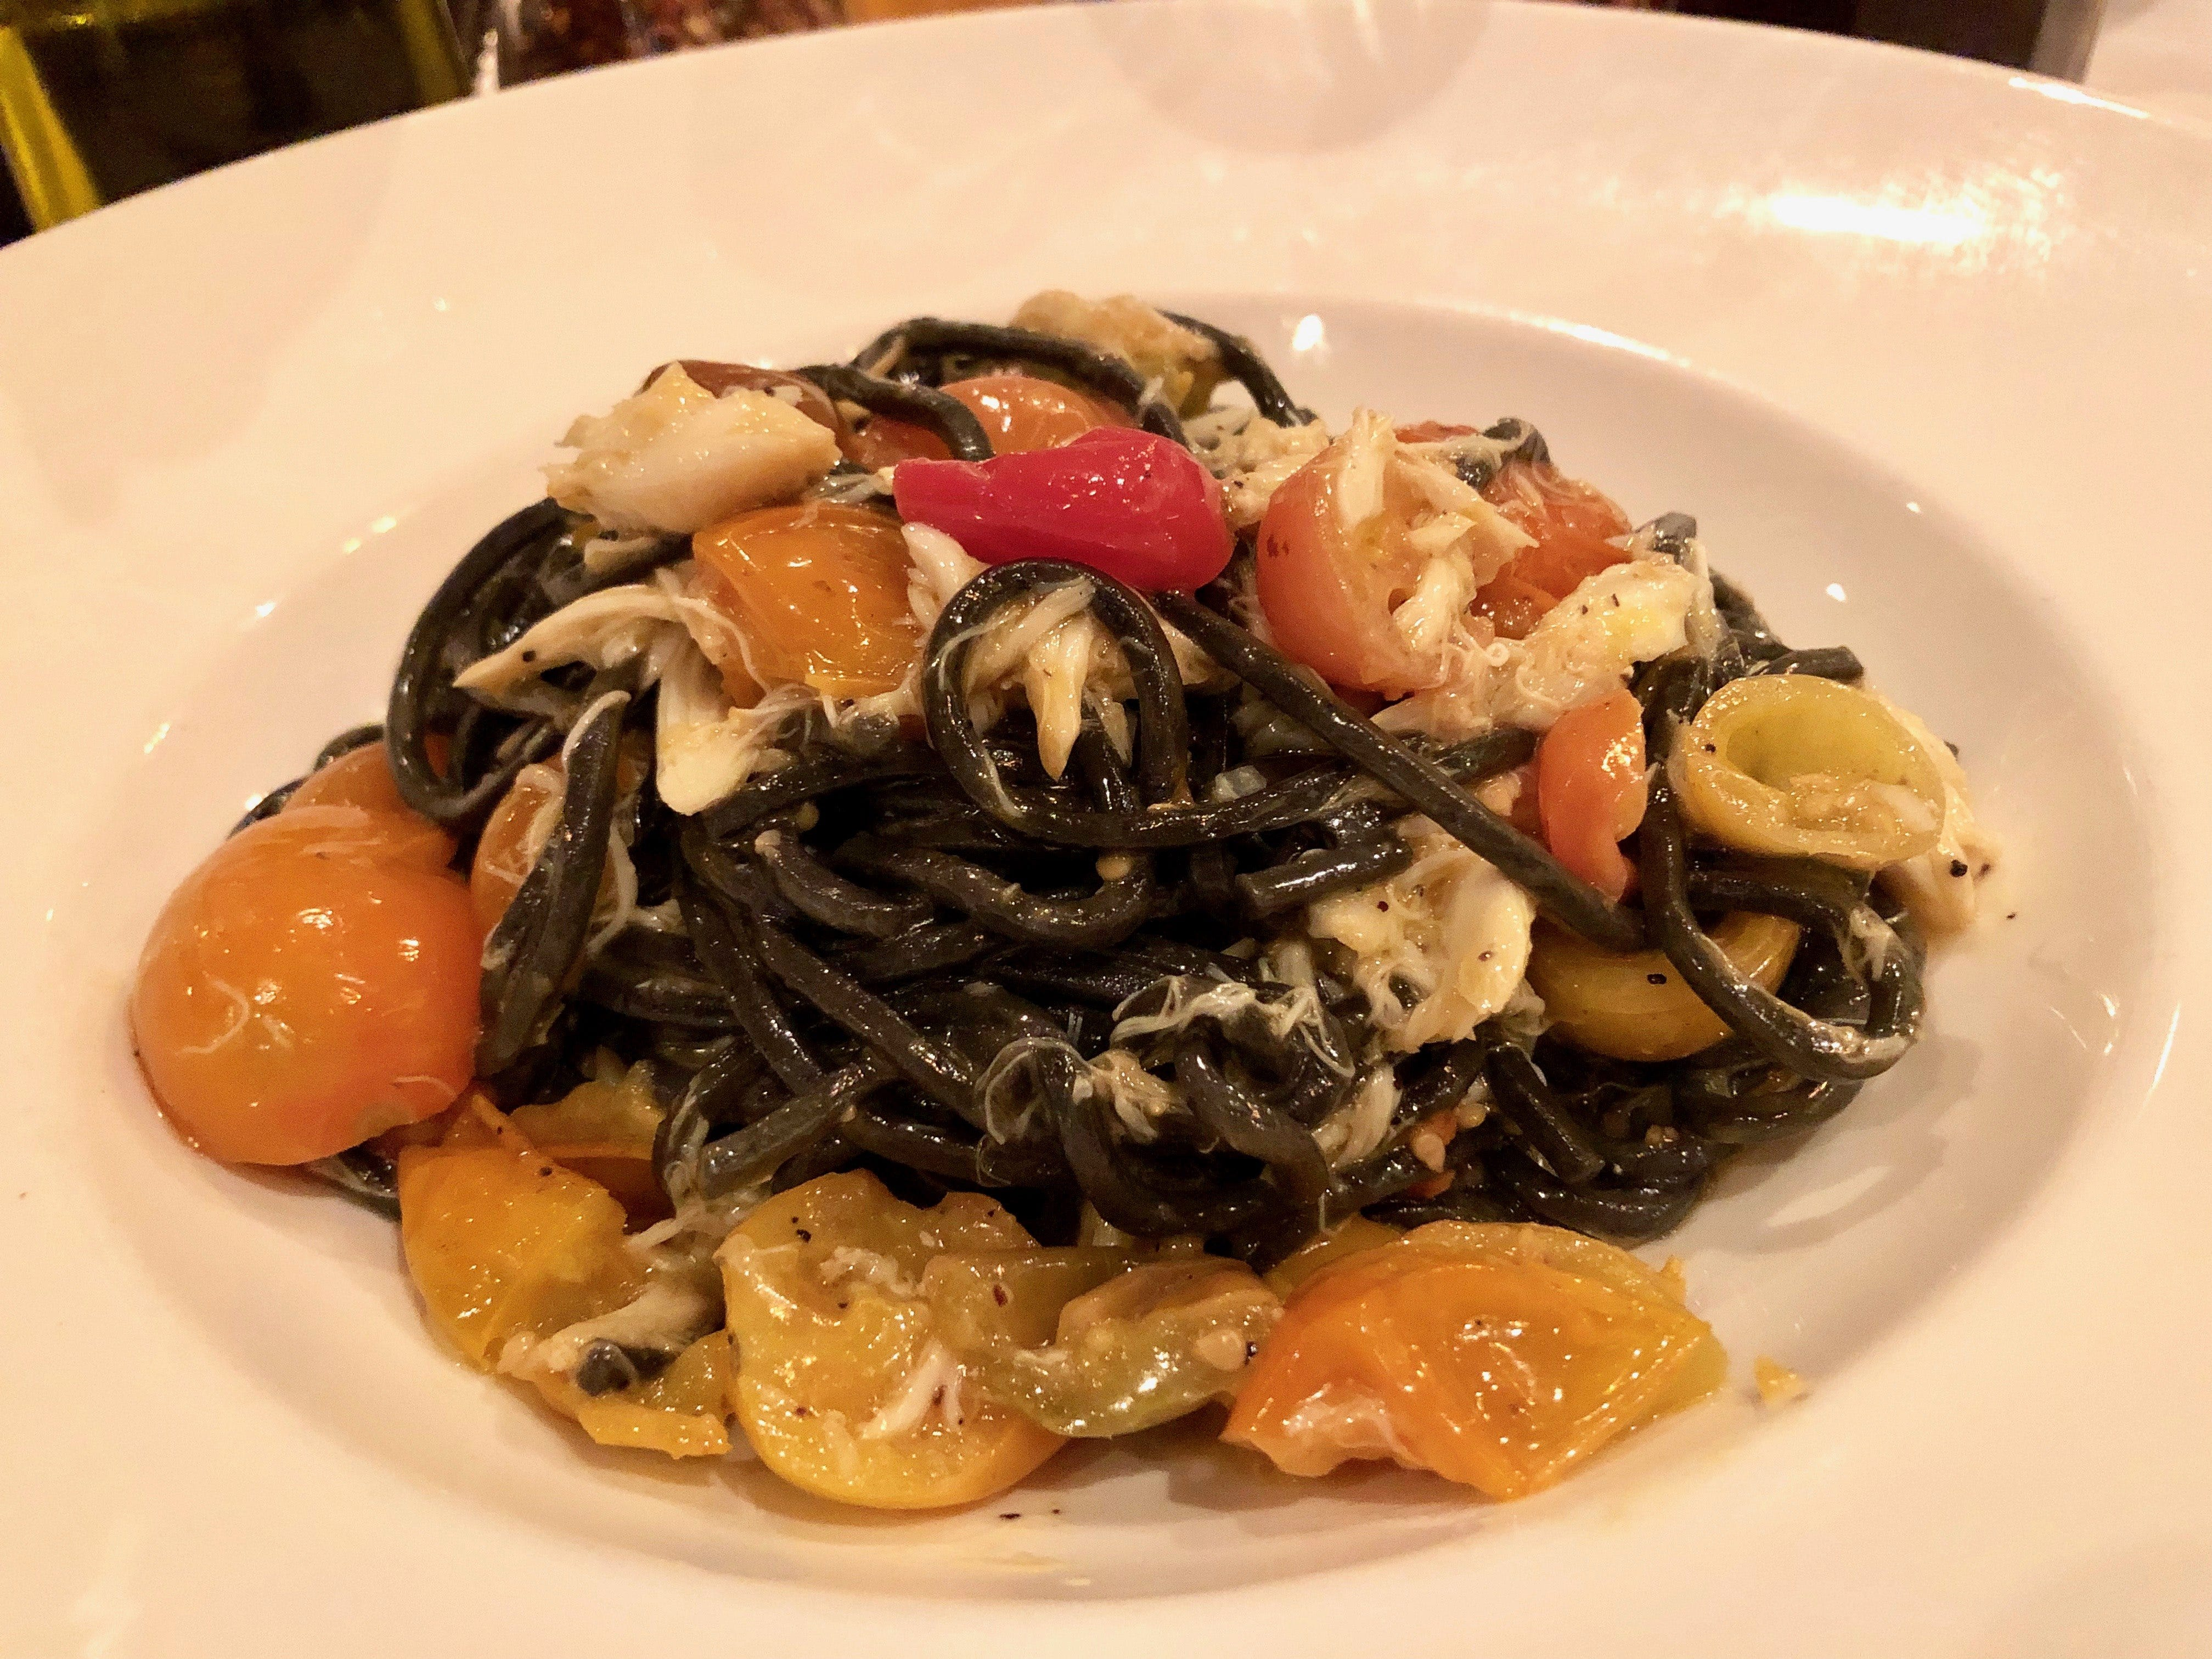 Squid-ink linguine is slicked in a luscious butter and white wine sauce at La Trattoria in downtown Naples.